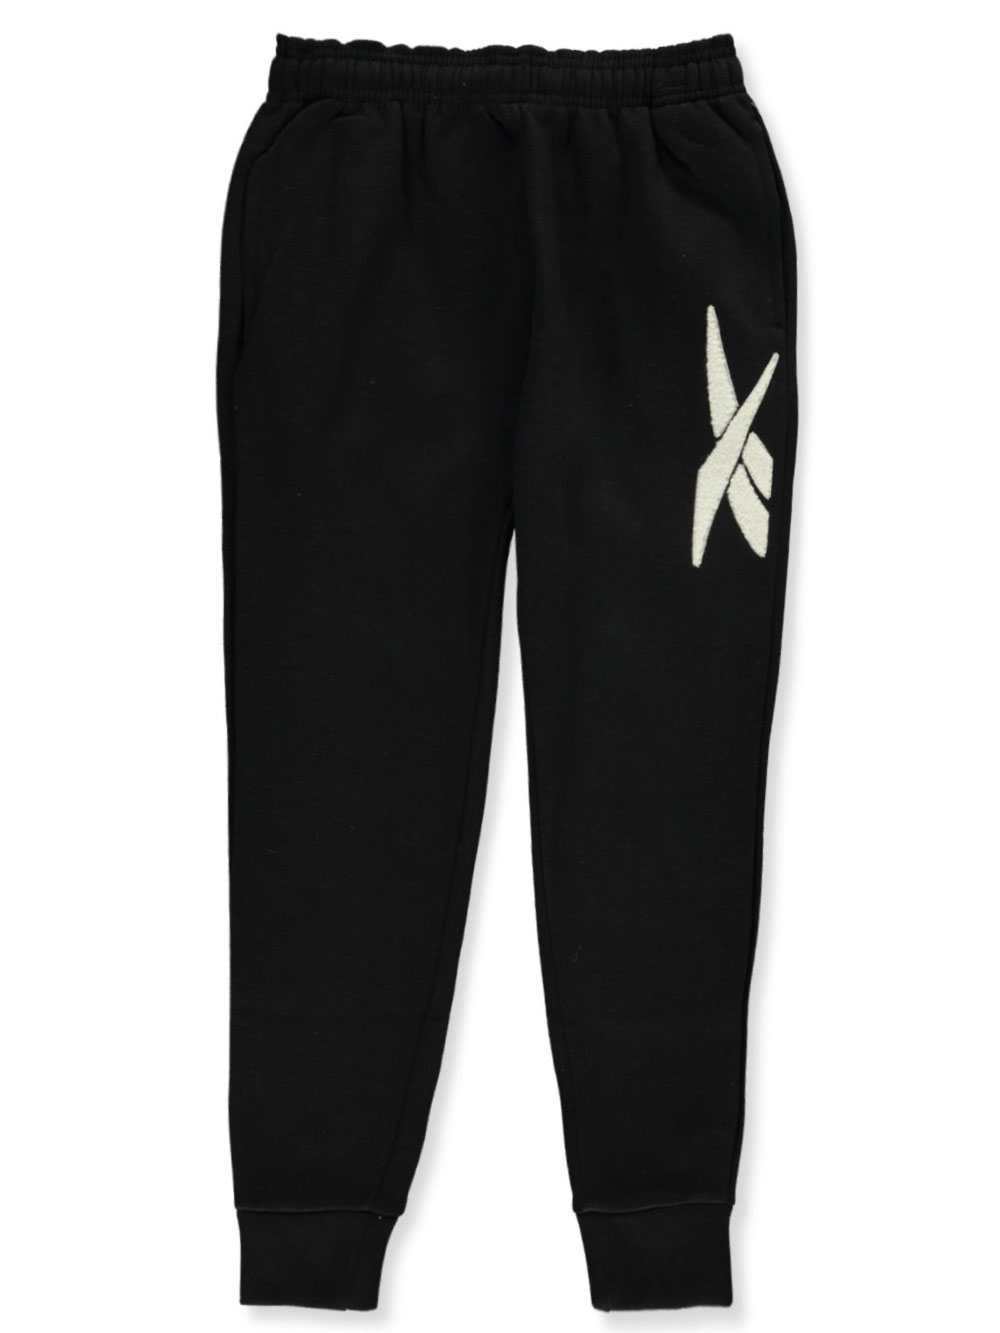 Sweatpants Logo Accents